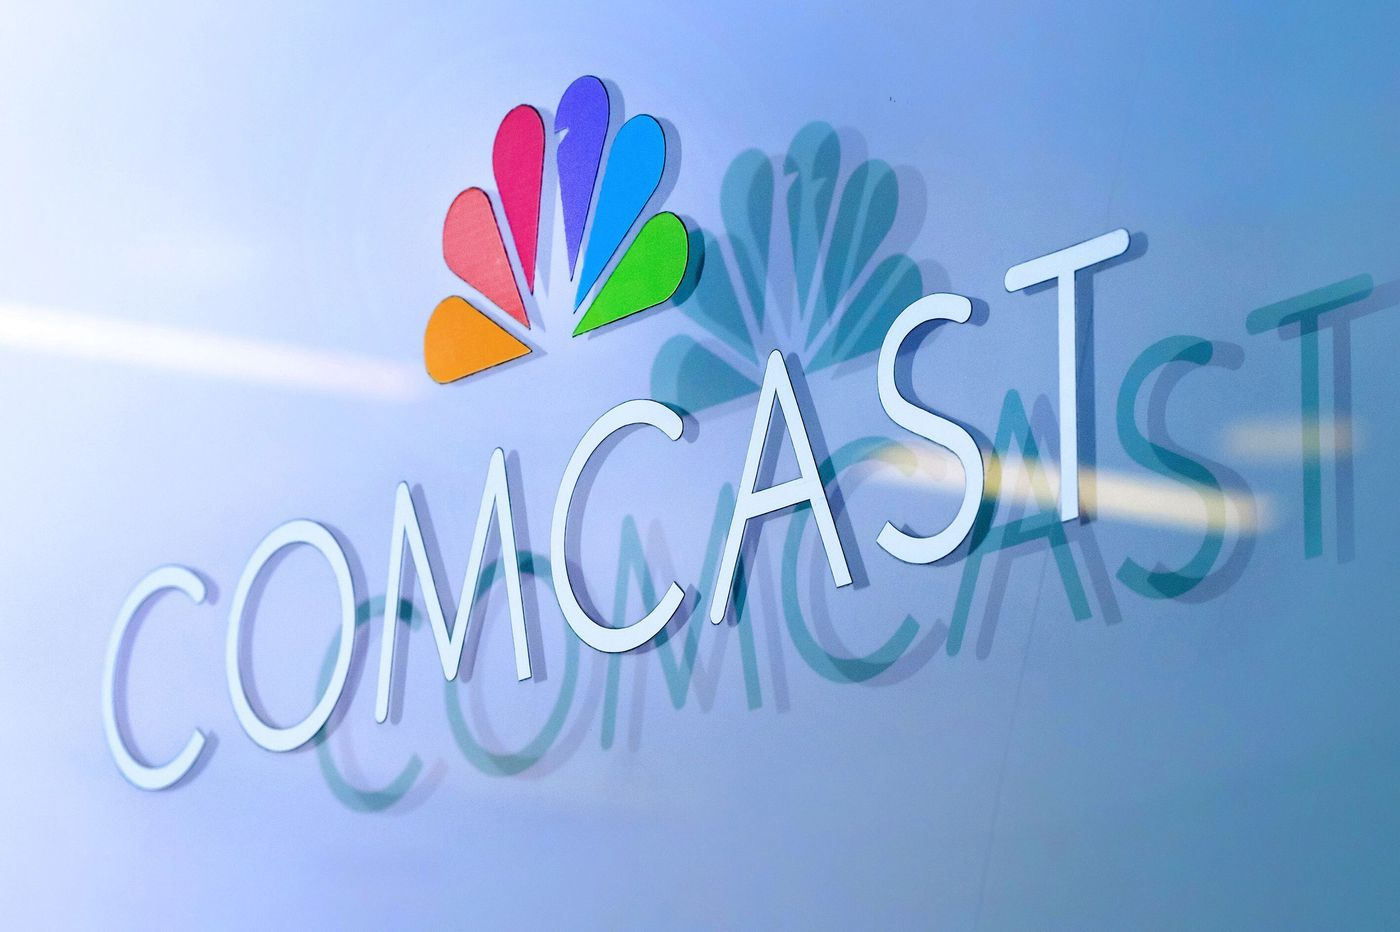 Comcast will charge customers more for heavy internet usage starting next year